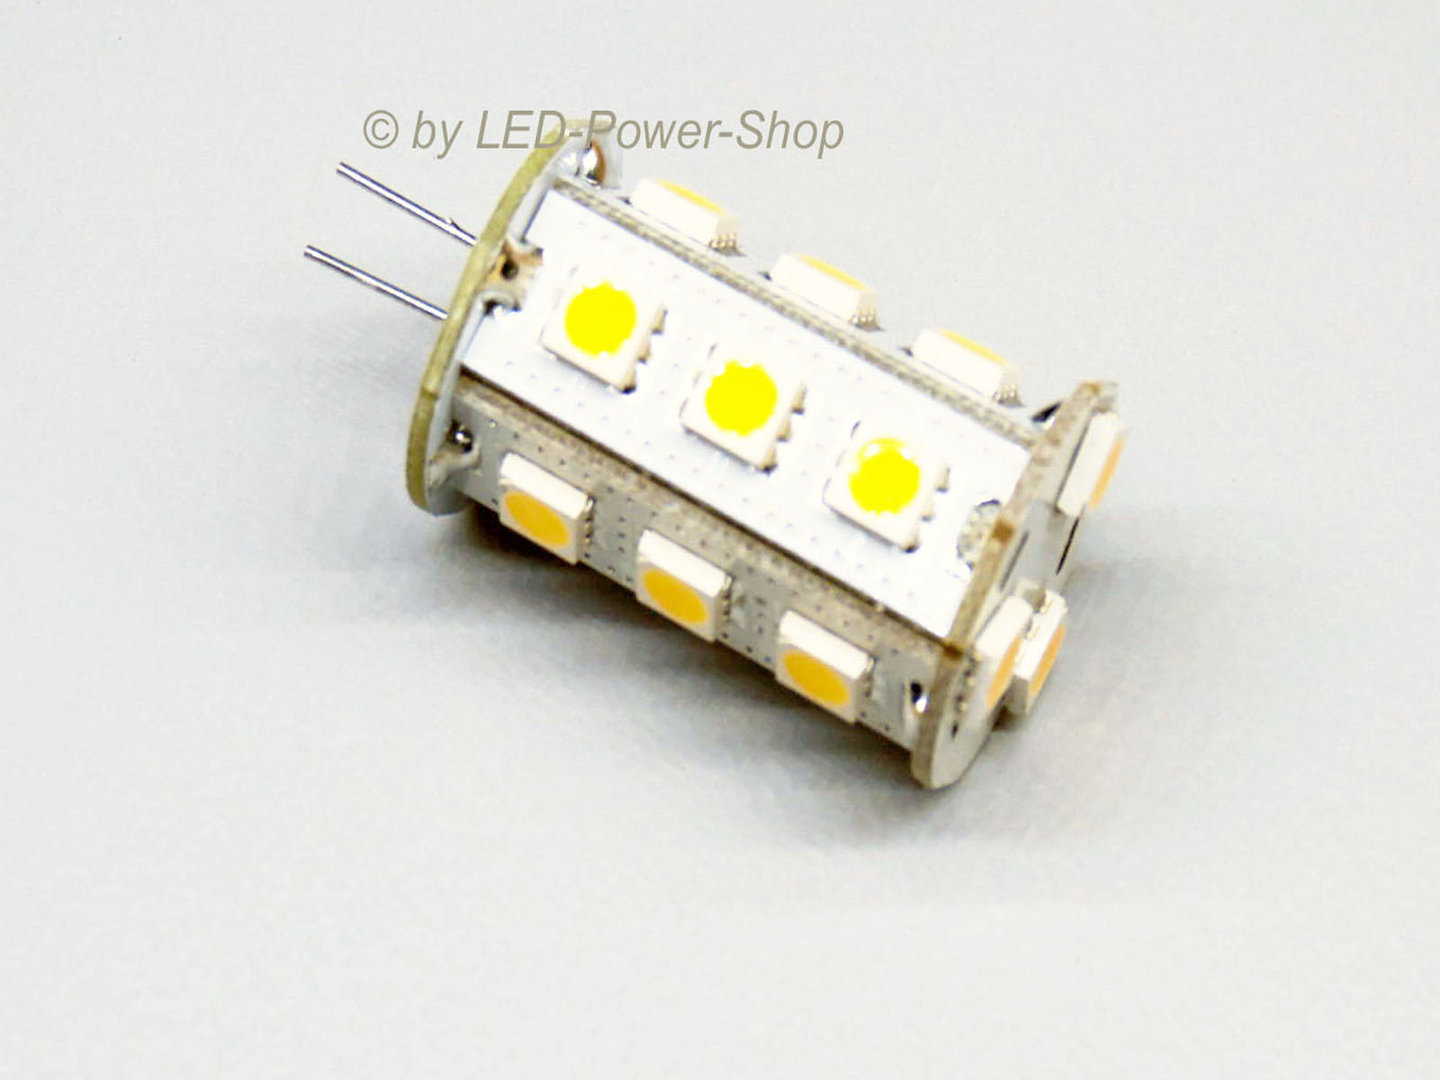 Stiftsockel G4V 18 LED SMD 10-30V warmweiß